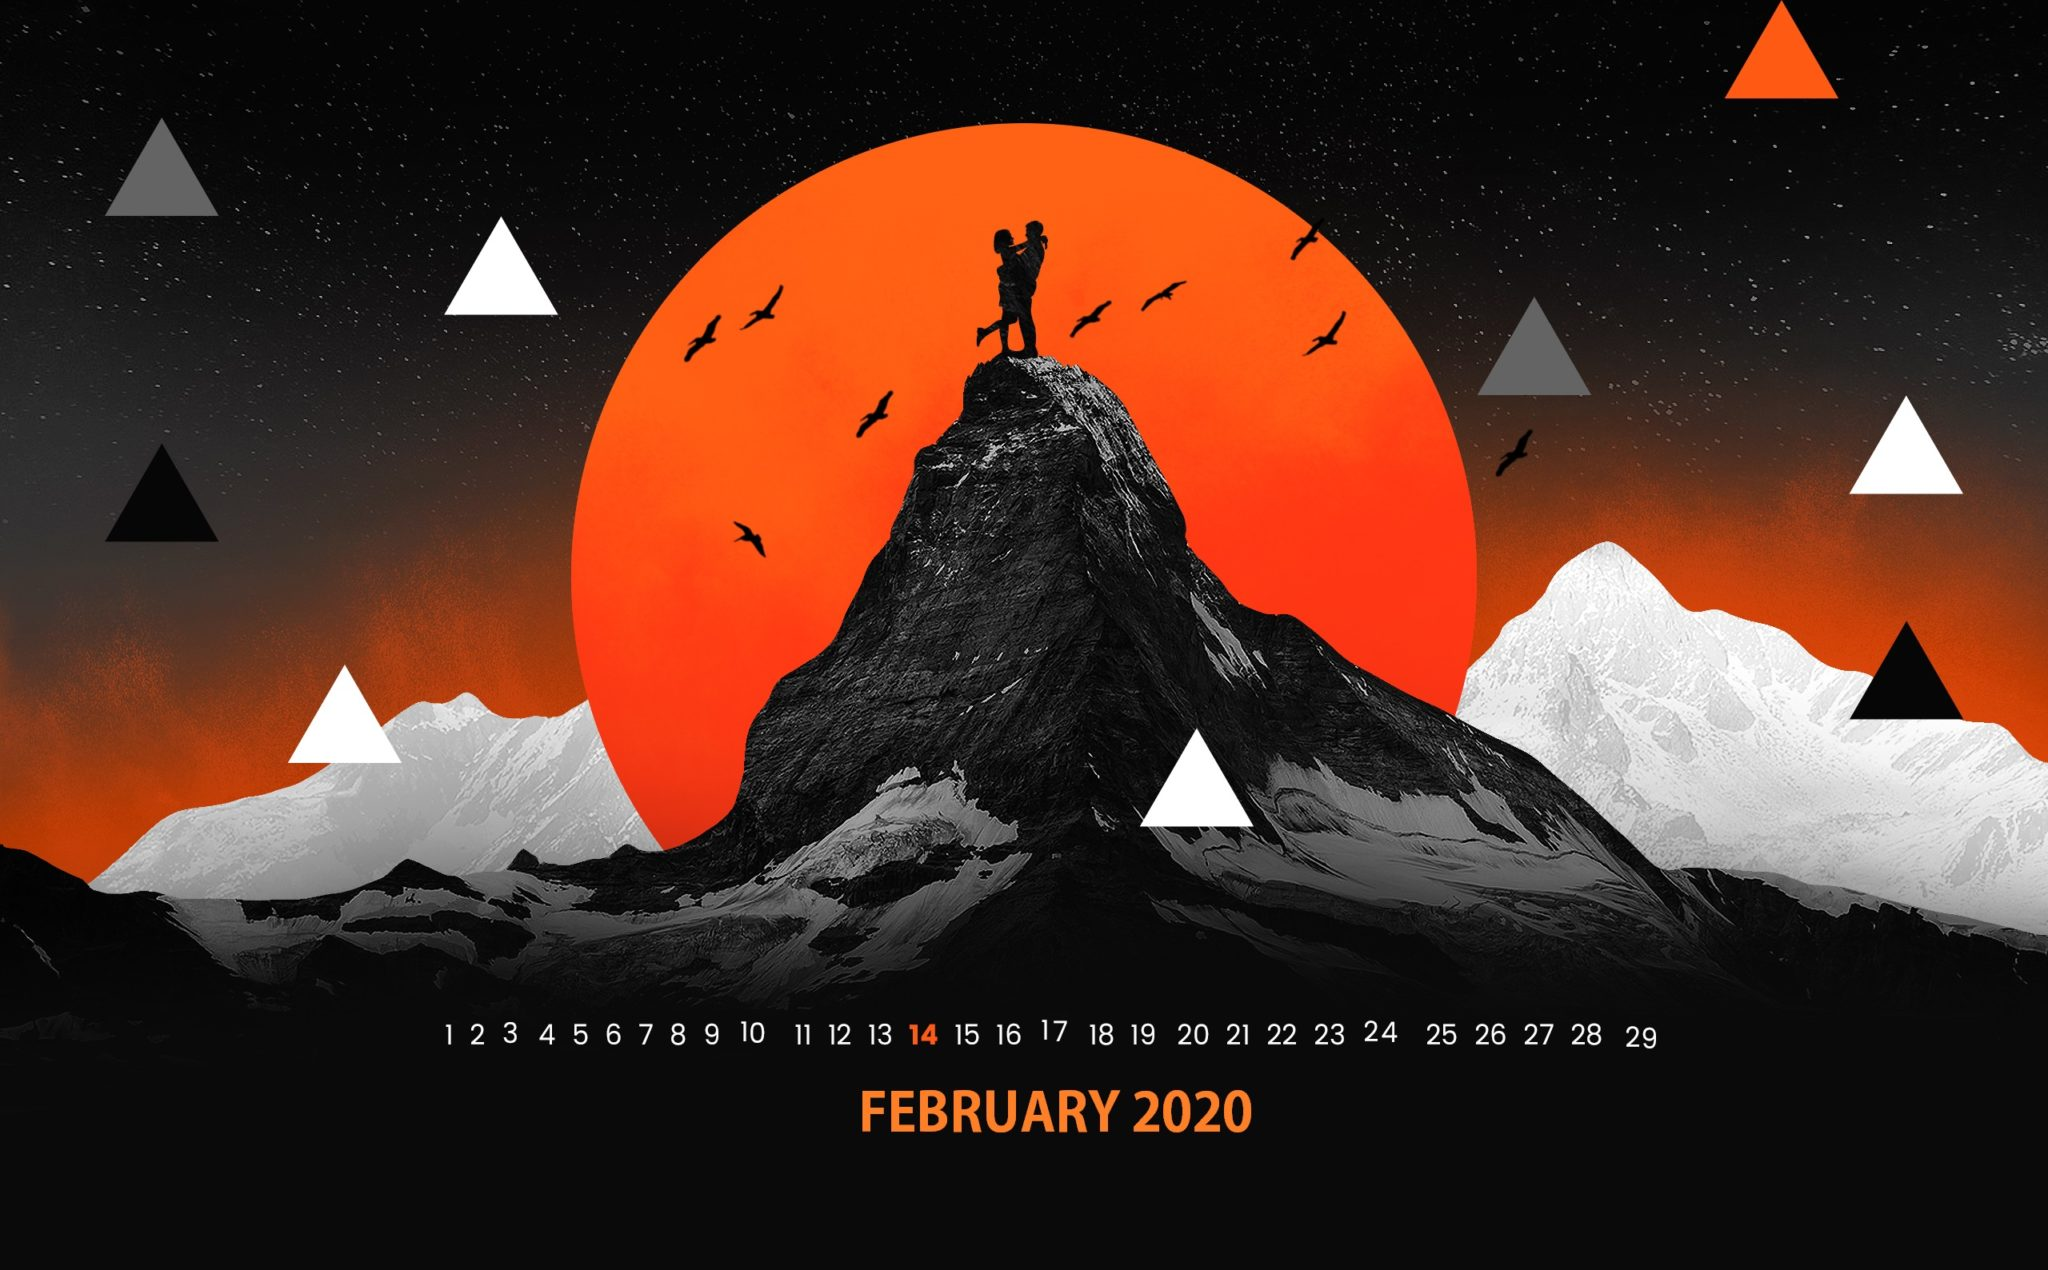 2020 Wallpaper Calendar Latest Calendar 2048x1270